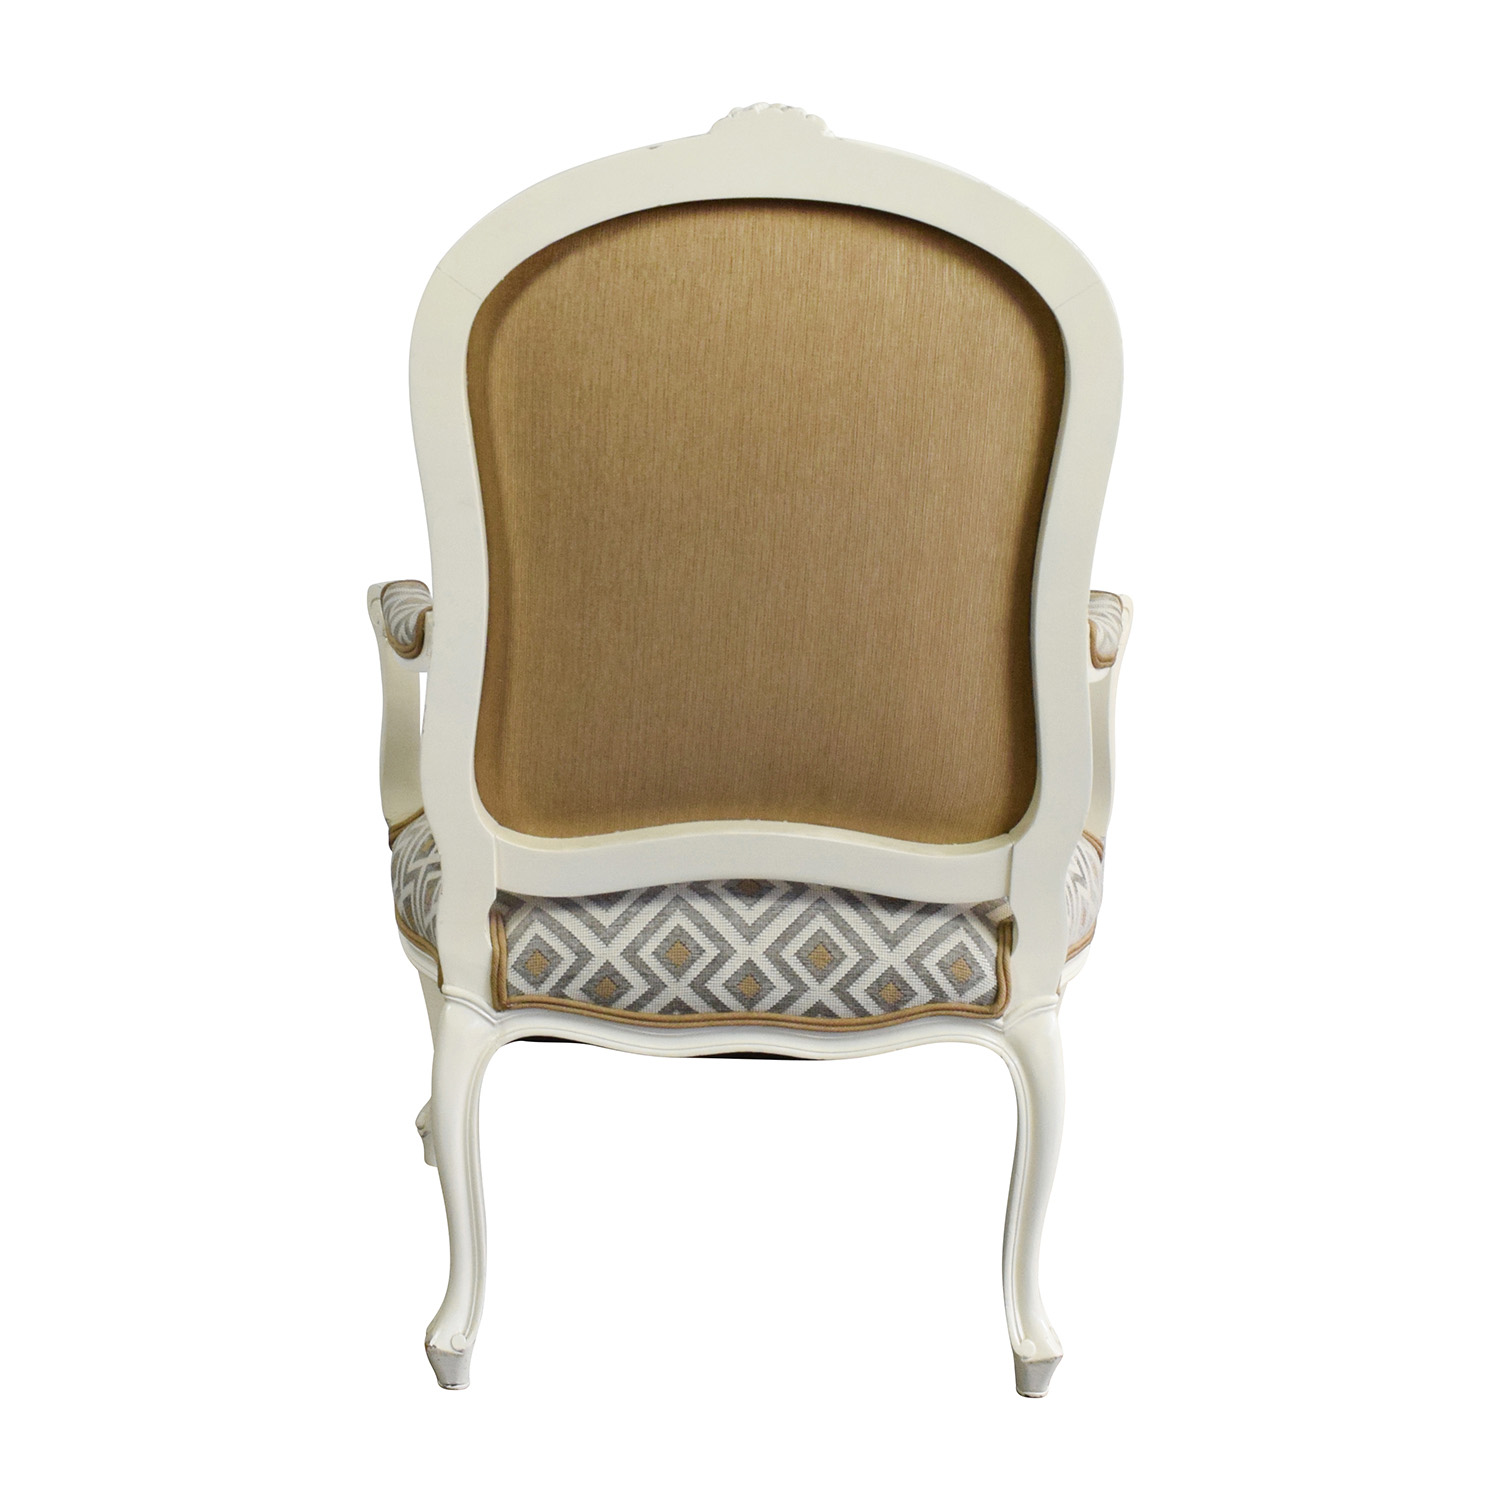 White Arm Chairs 90 Off White Frame French Upholsterd Arm Chair Chairs